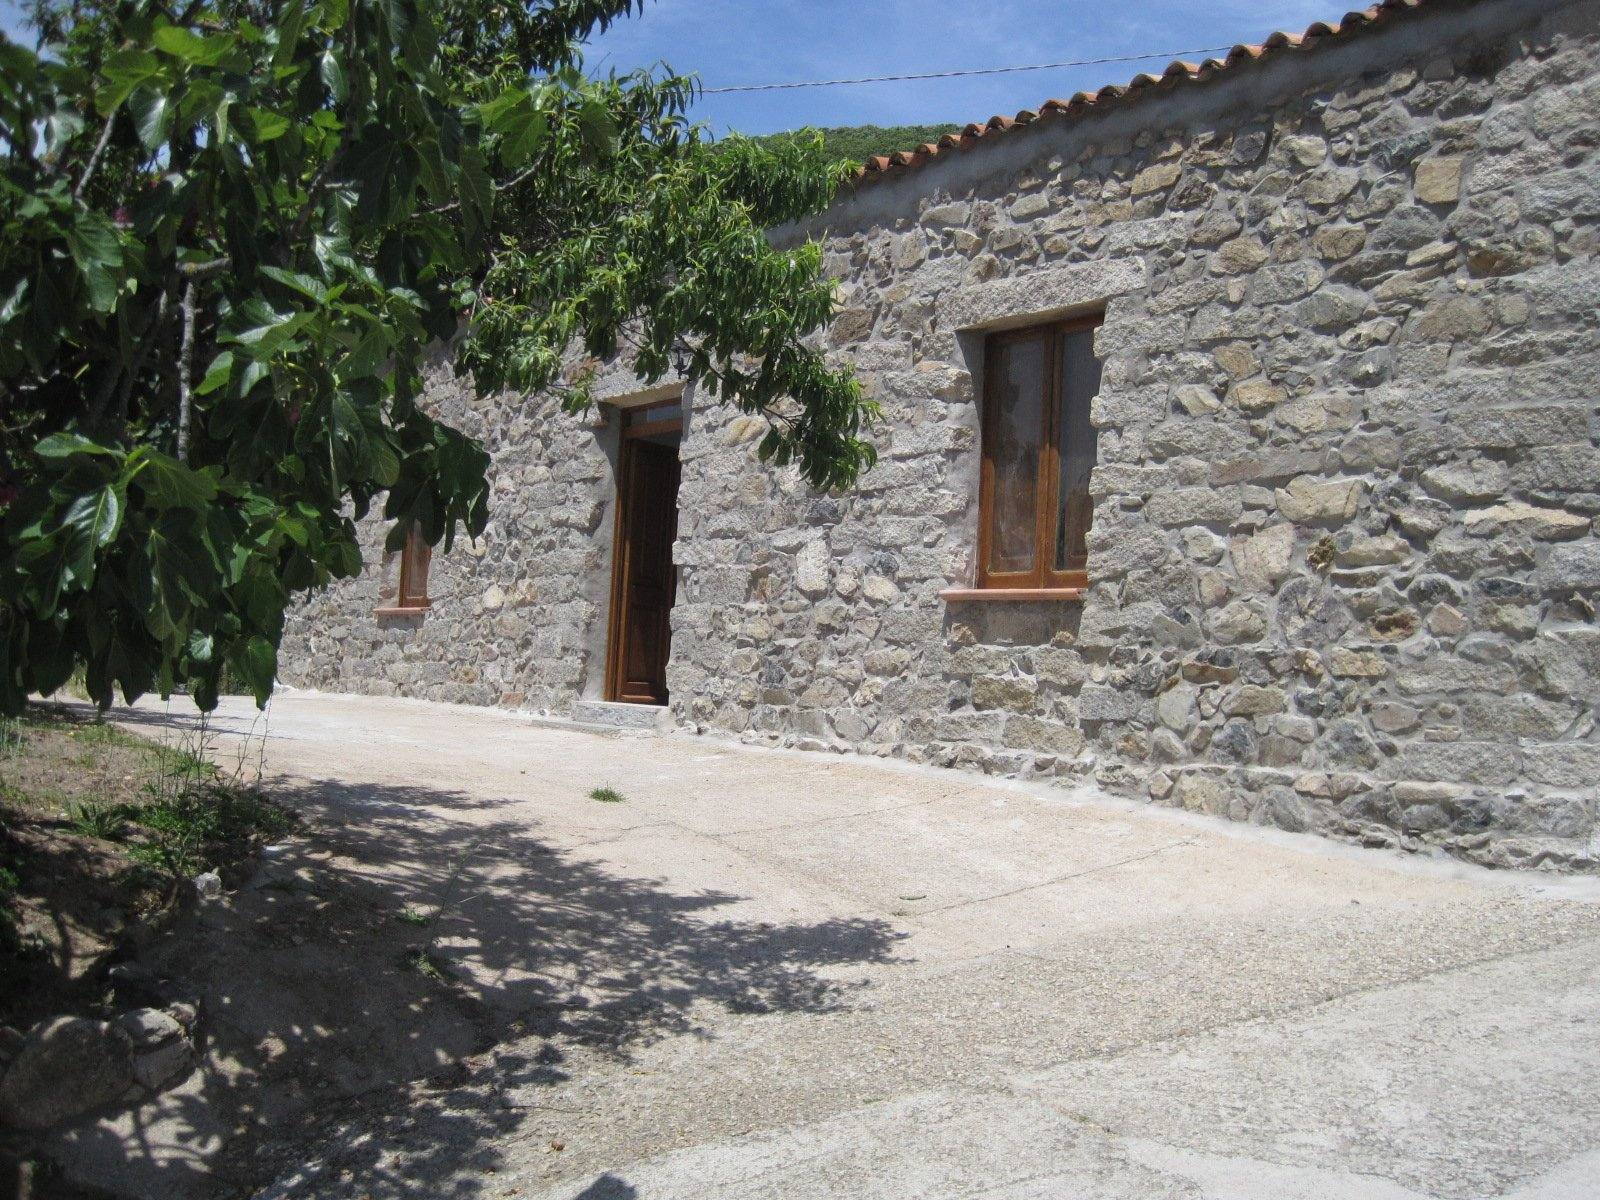 Restored 162 M2 Traditional Homes With 1000 M2 Land for Sale in Bortigiadas, North East Sardinia